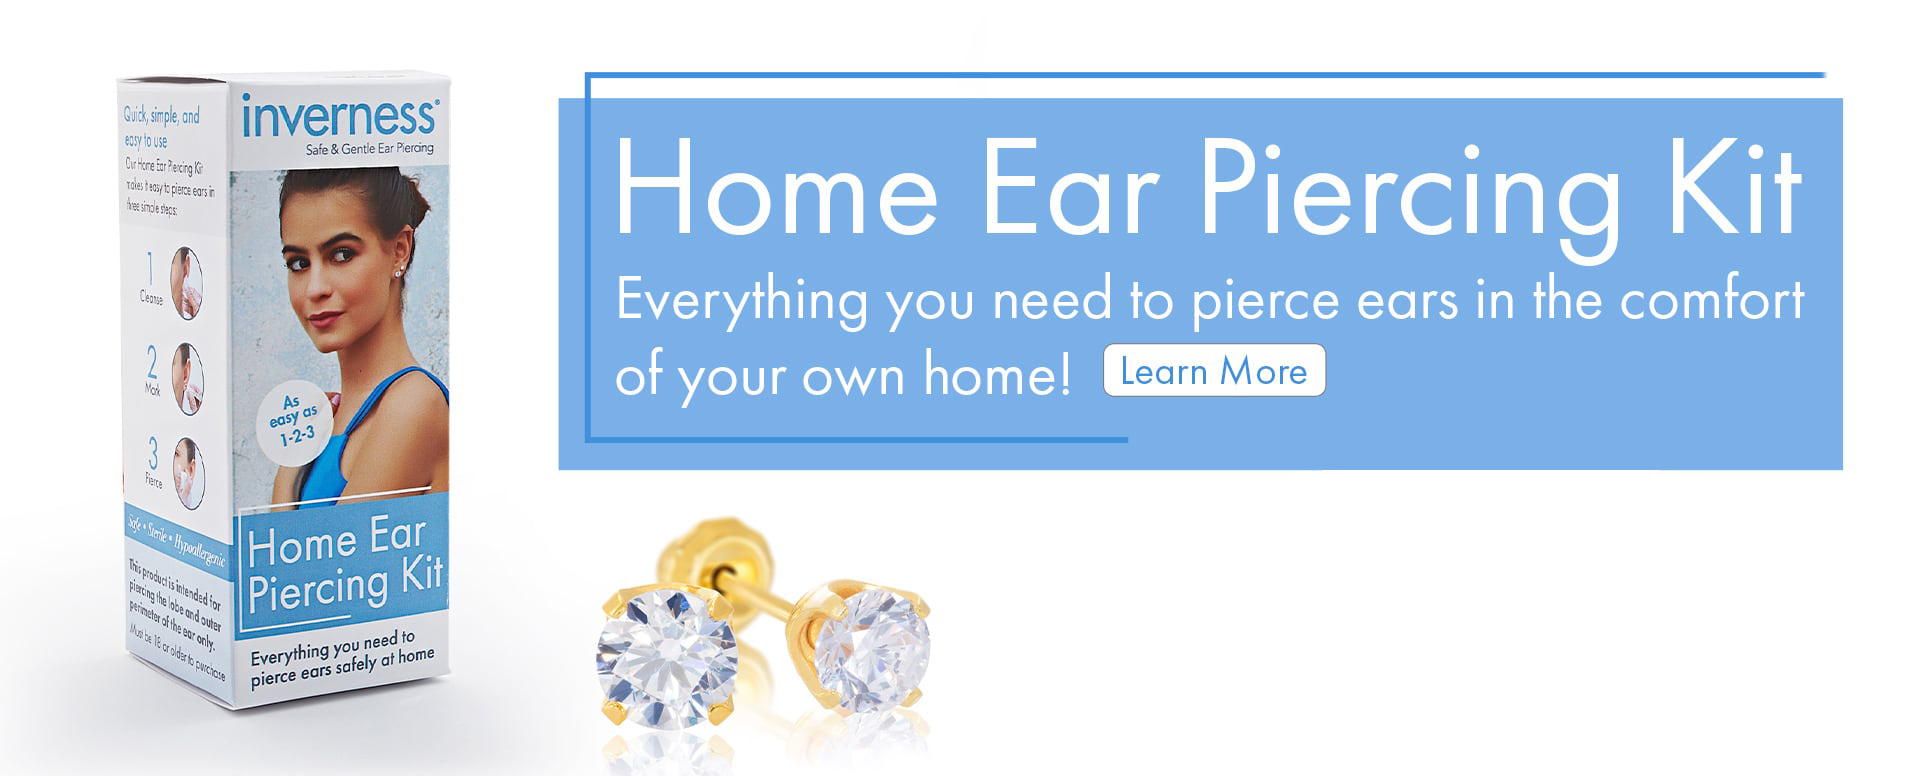 Home Ear Piercing Kit